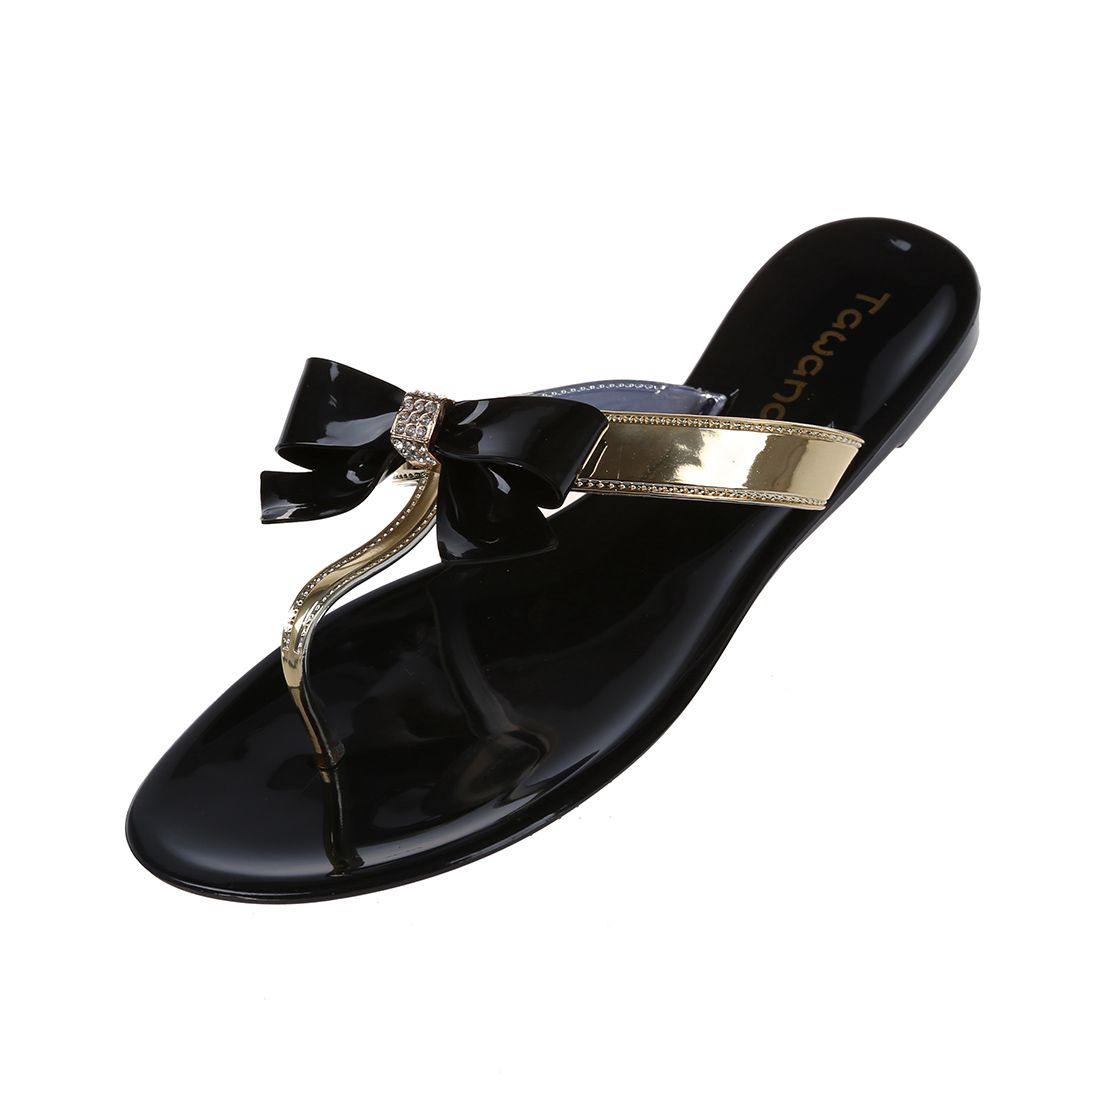 TAWANA Womens Ladies Toe Bow Diamante Jelly Summer Flat Flip Flop Thong Sandals